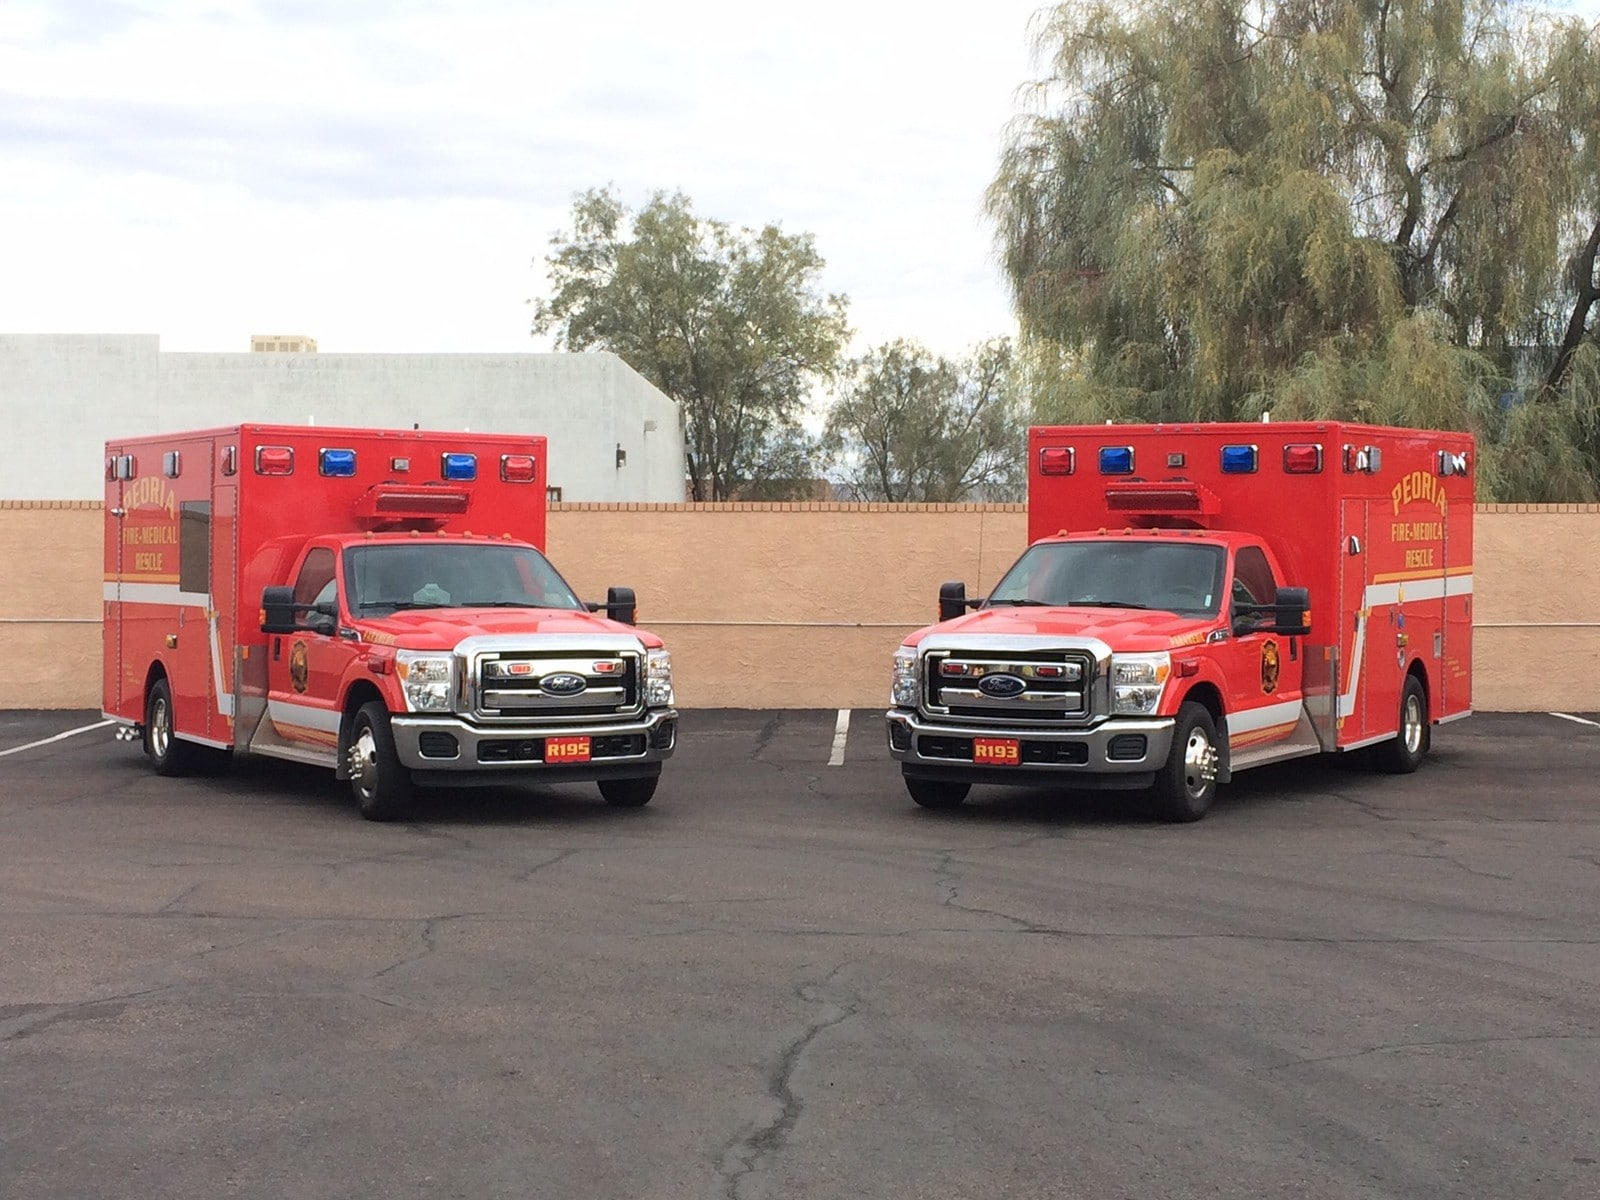 Peoria Storage Peoria Fire Medical Department Demers Mxp150 Ambulances Redsky